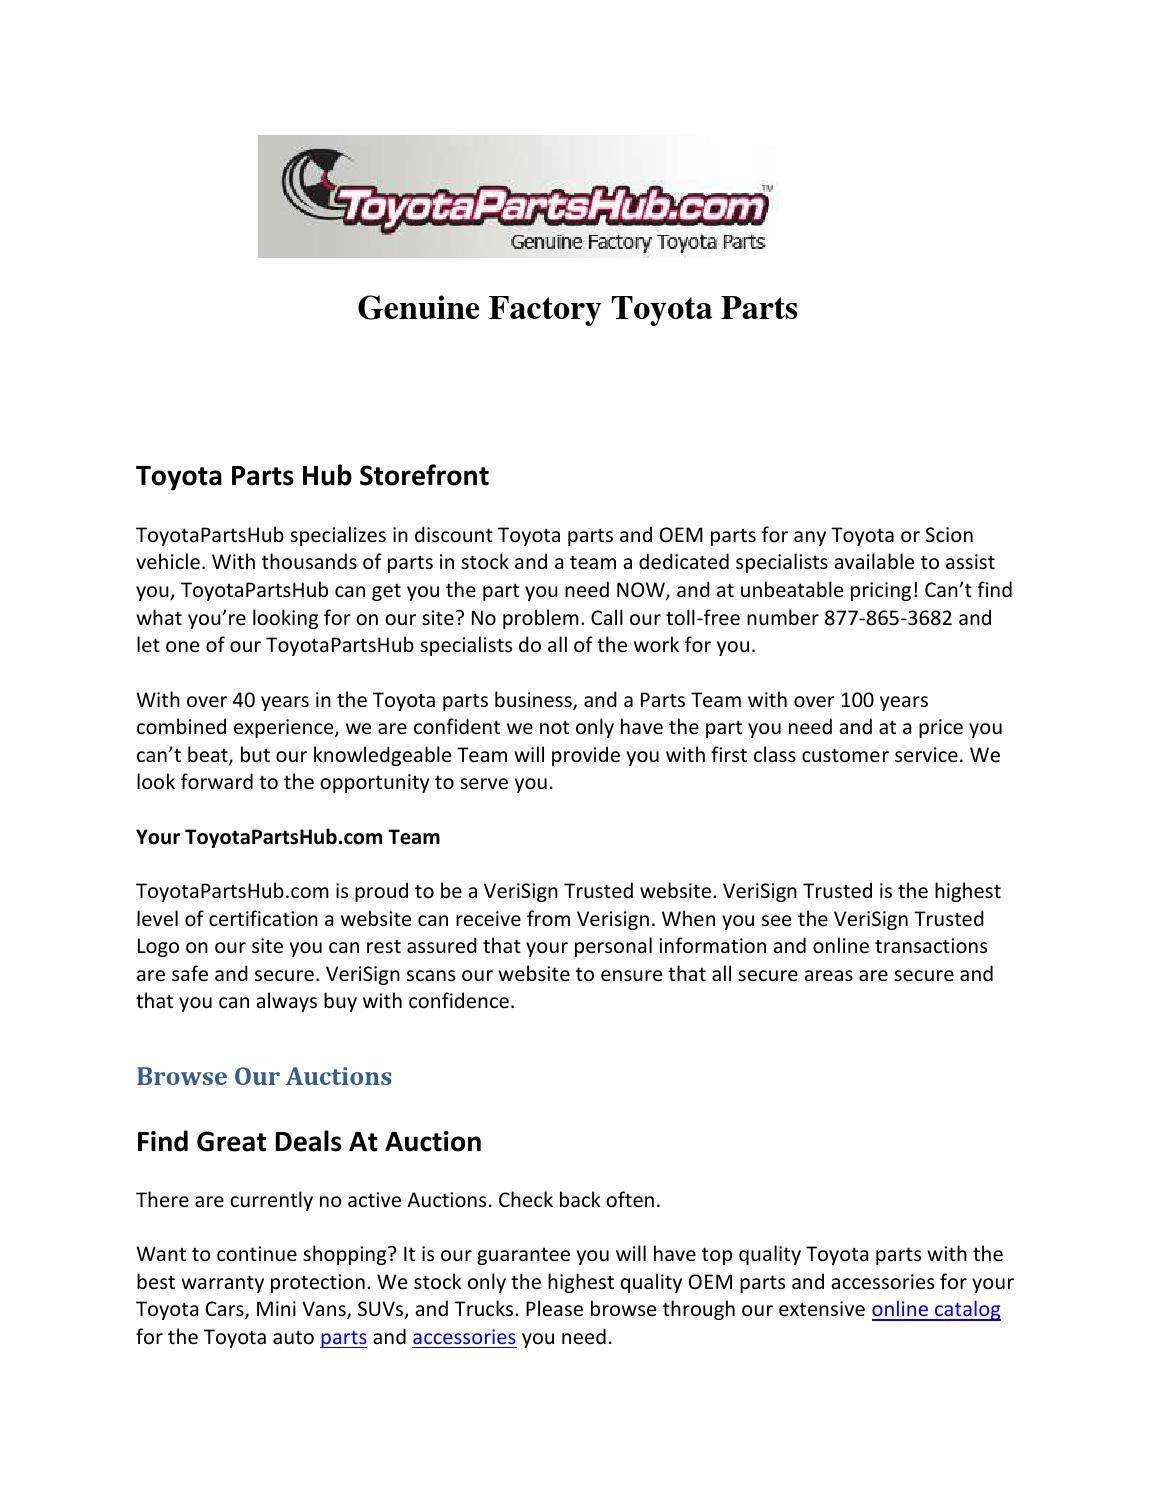 Toyota Parts Online >> Genuine Factory Toyota Parts By Toyota Partshub Issuu